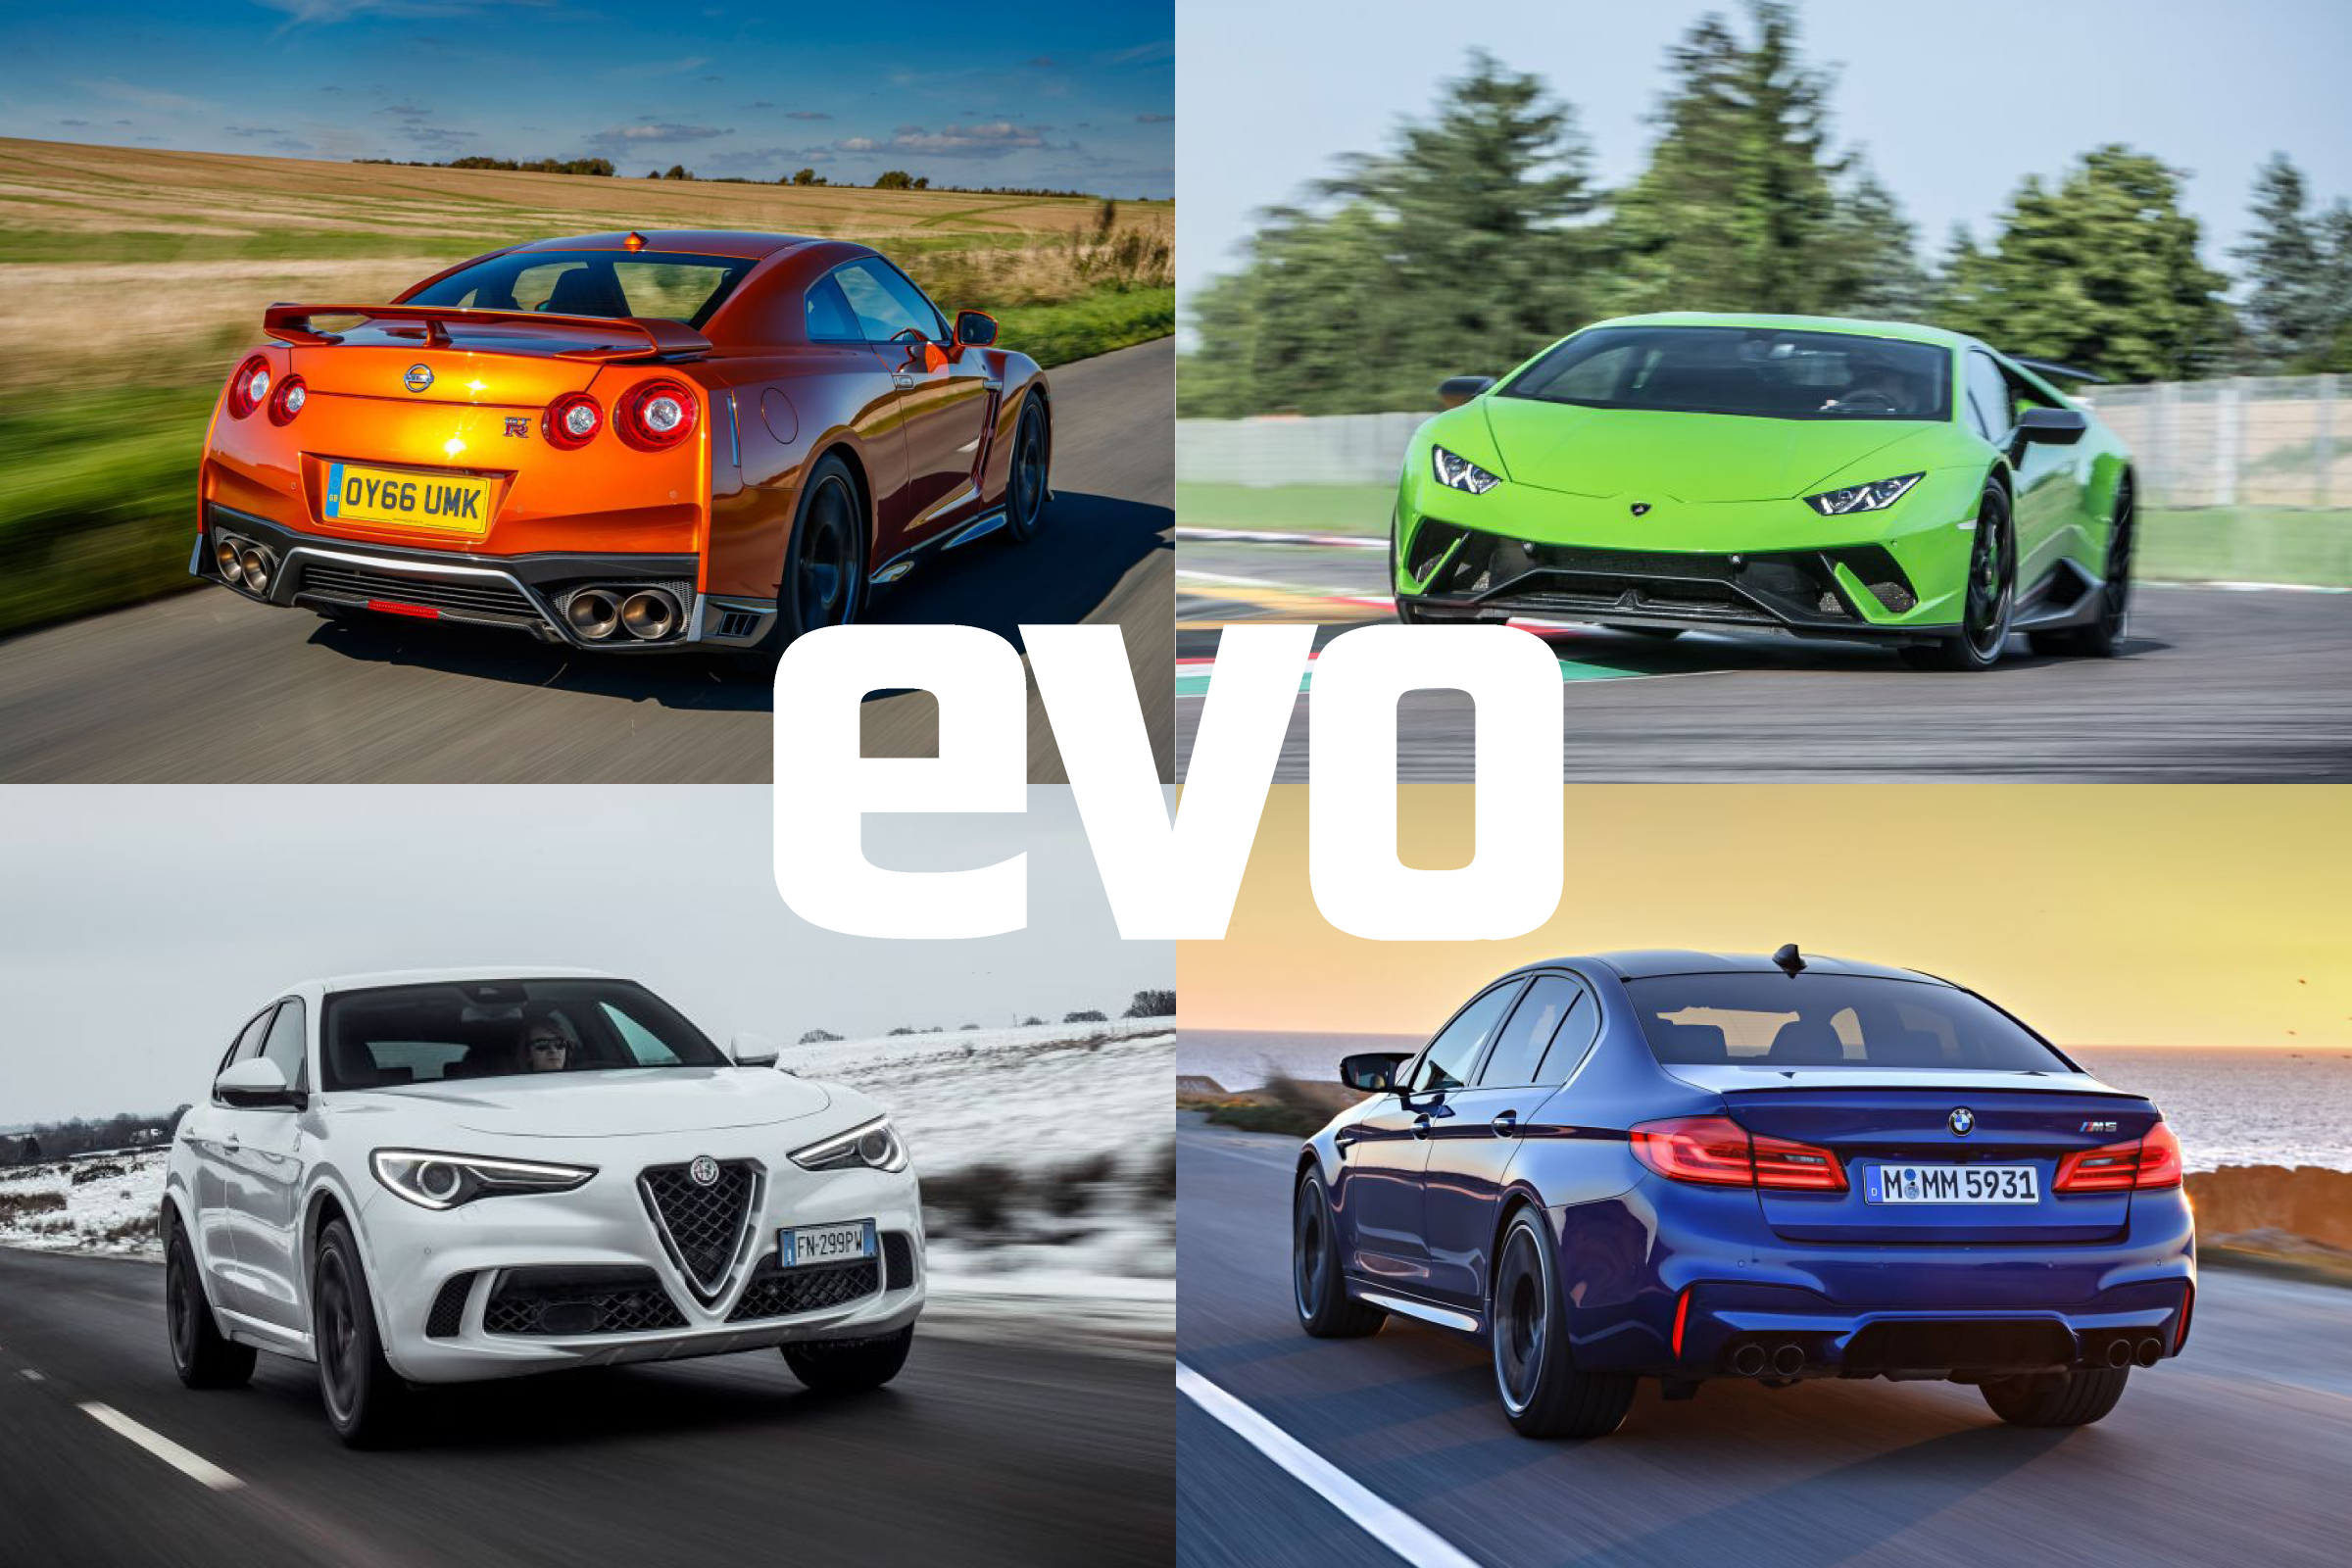 Best 4x4 Cars 2019 The Pick Of Today S All Wheel Drive Performance Car Crop Evo